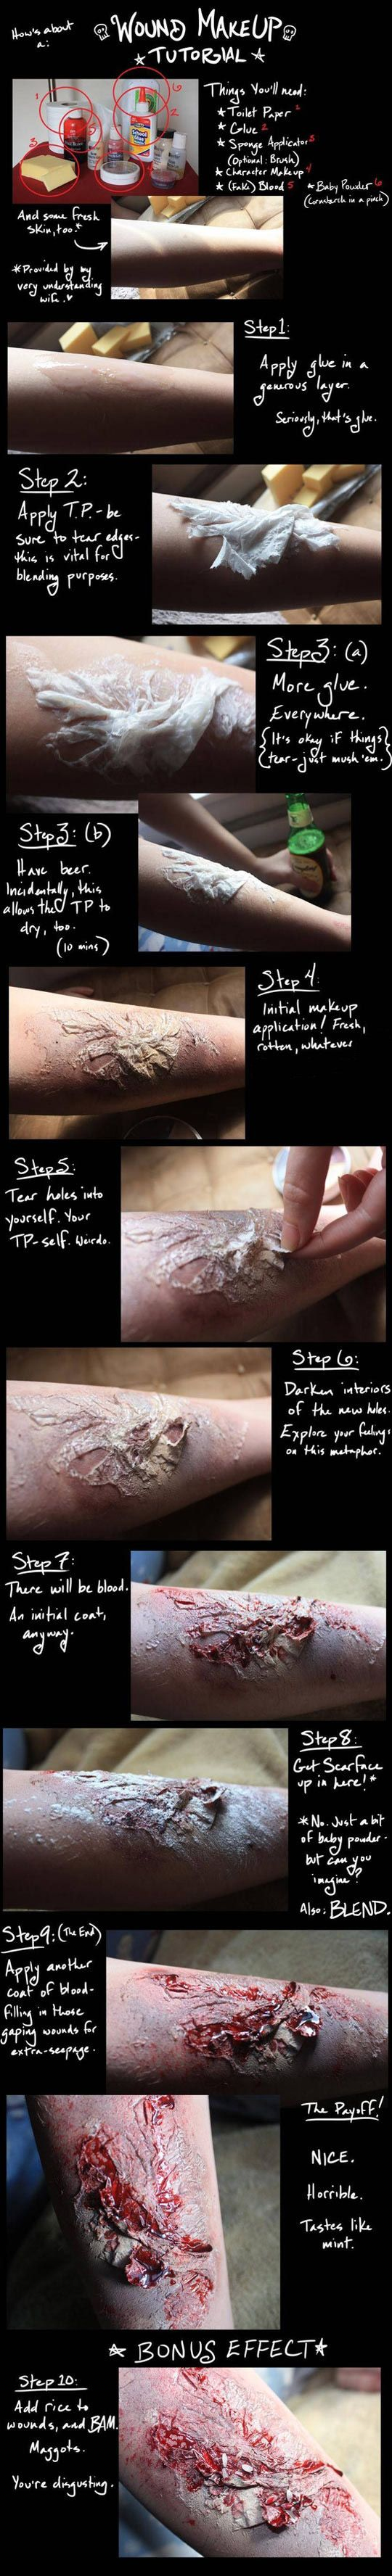 Wound makeup tutorial (yeah, I put this in DIY and Crafts)